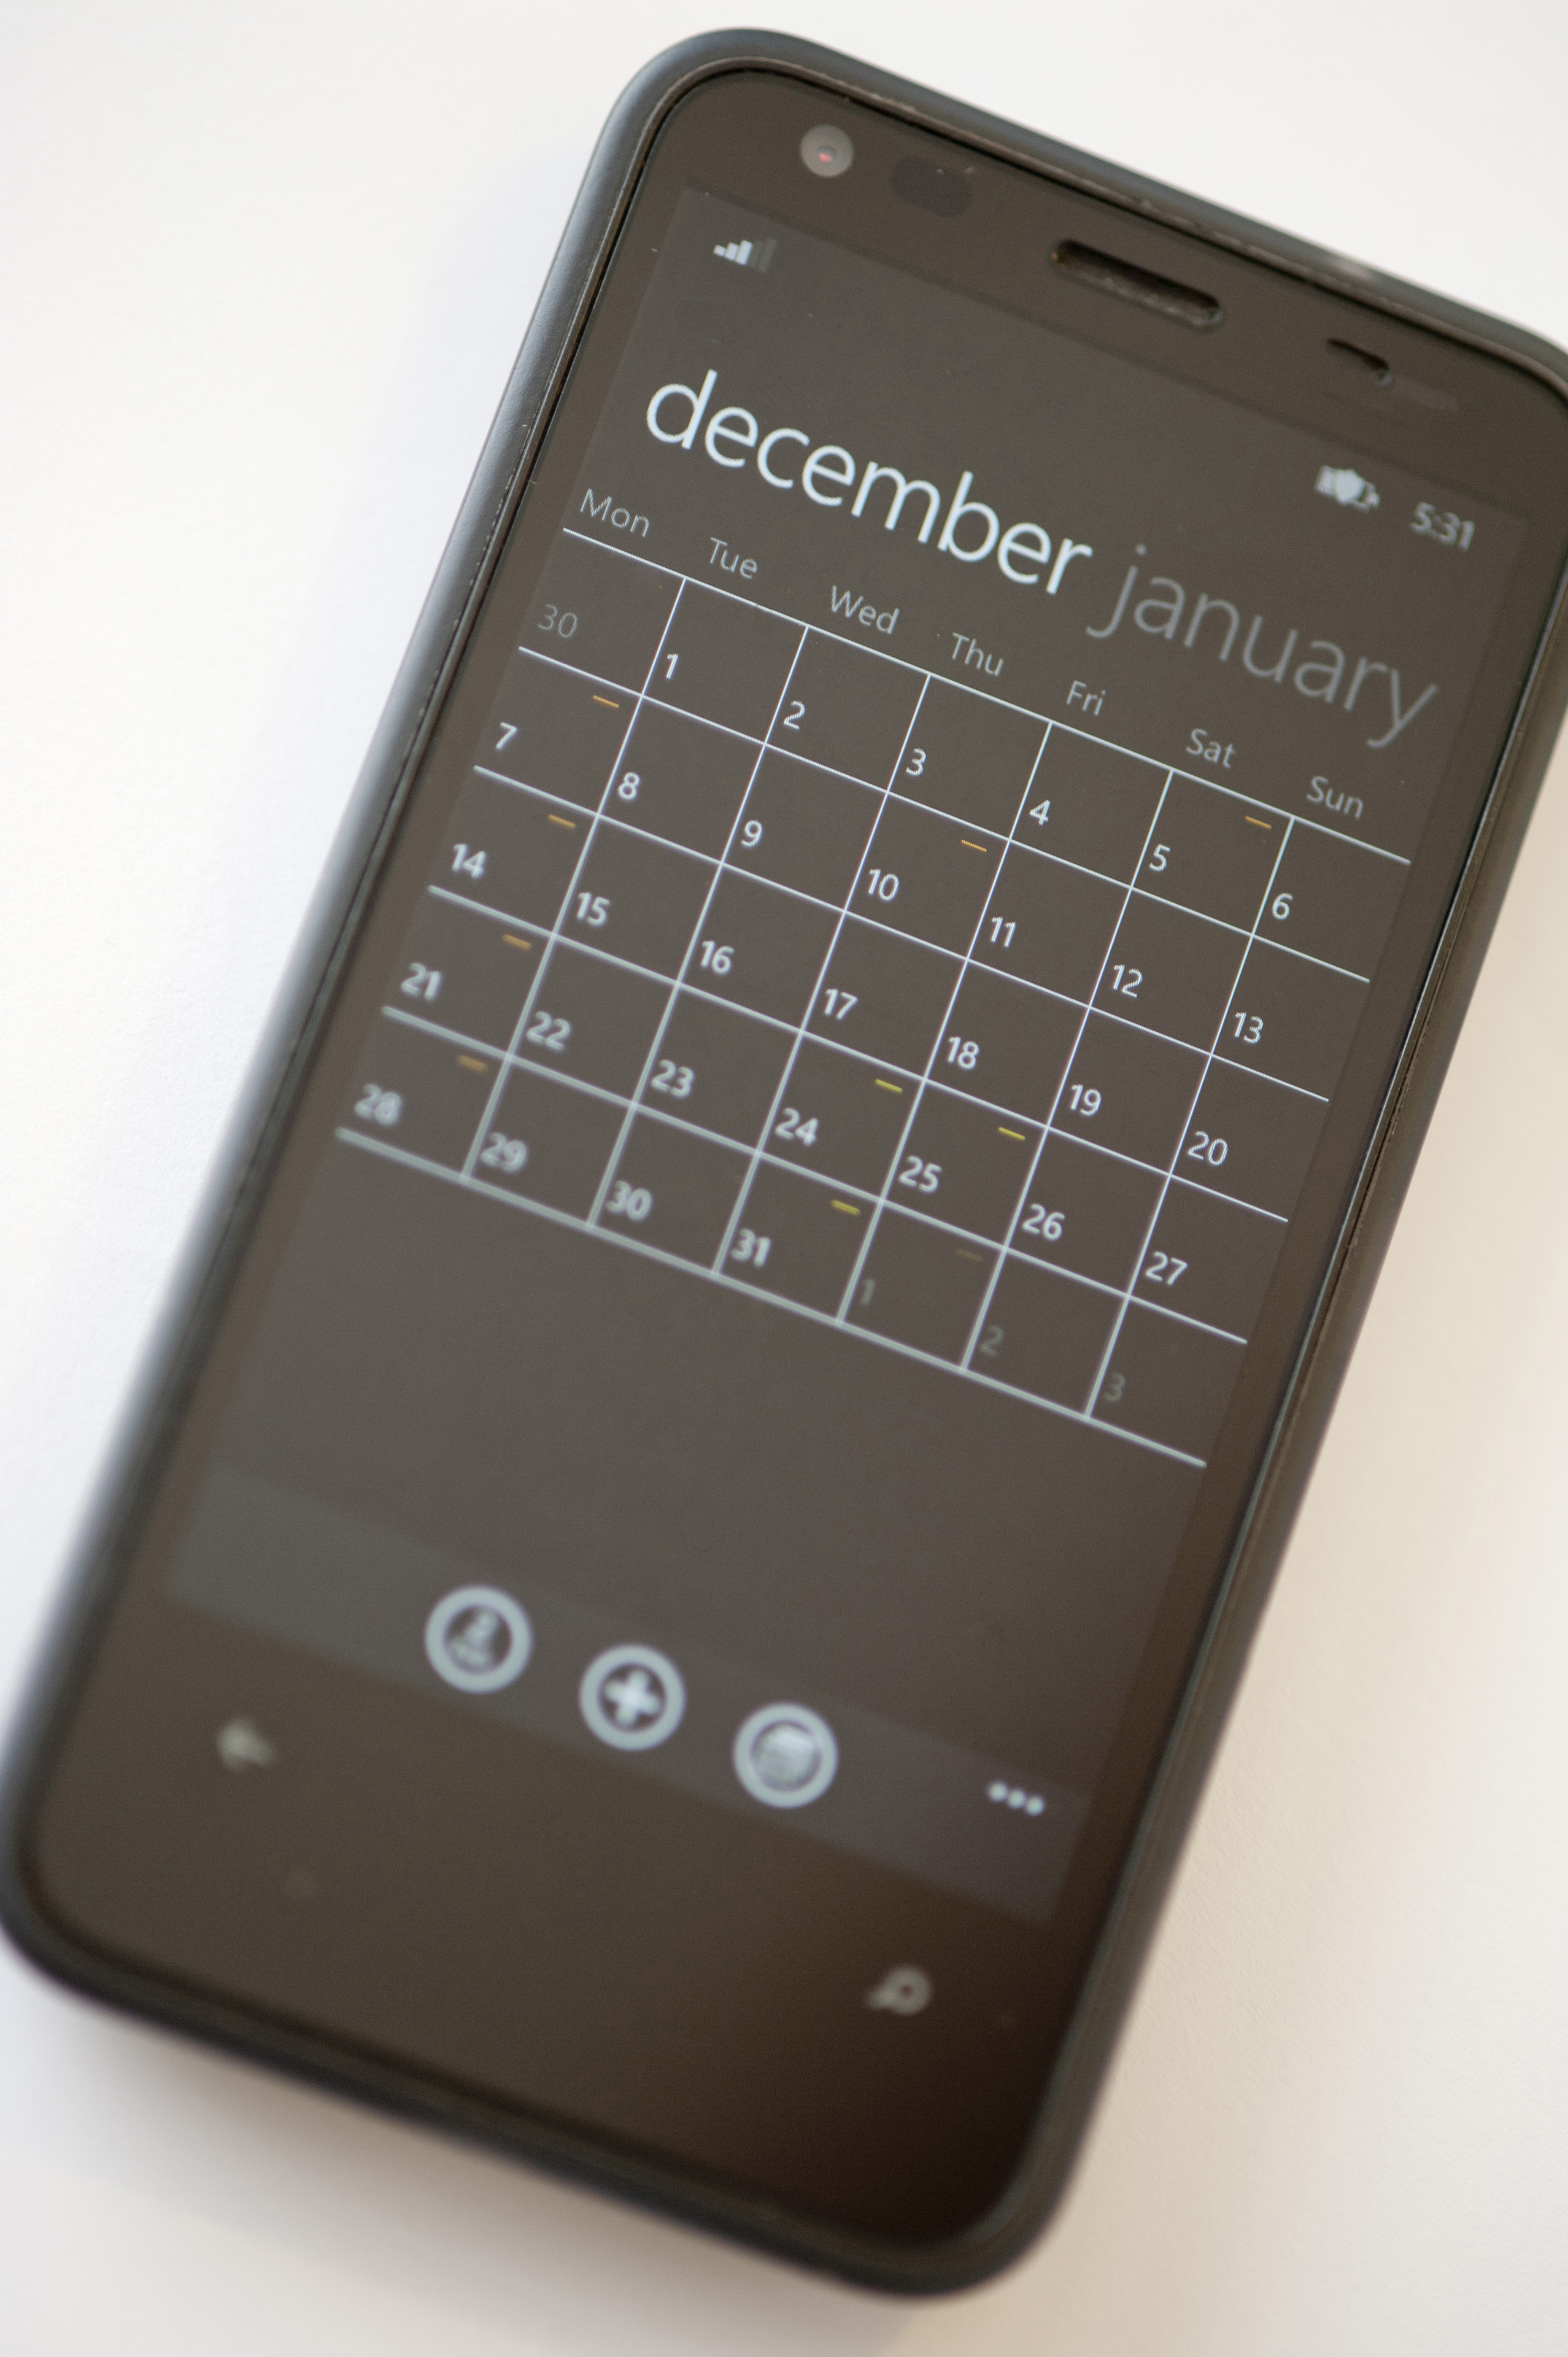 Image of Agenda Application on a Black Mobile Phone | Freebie ...